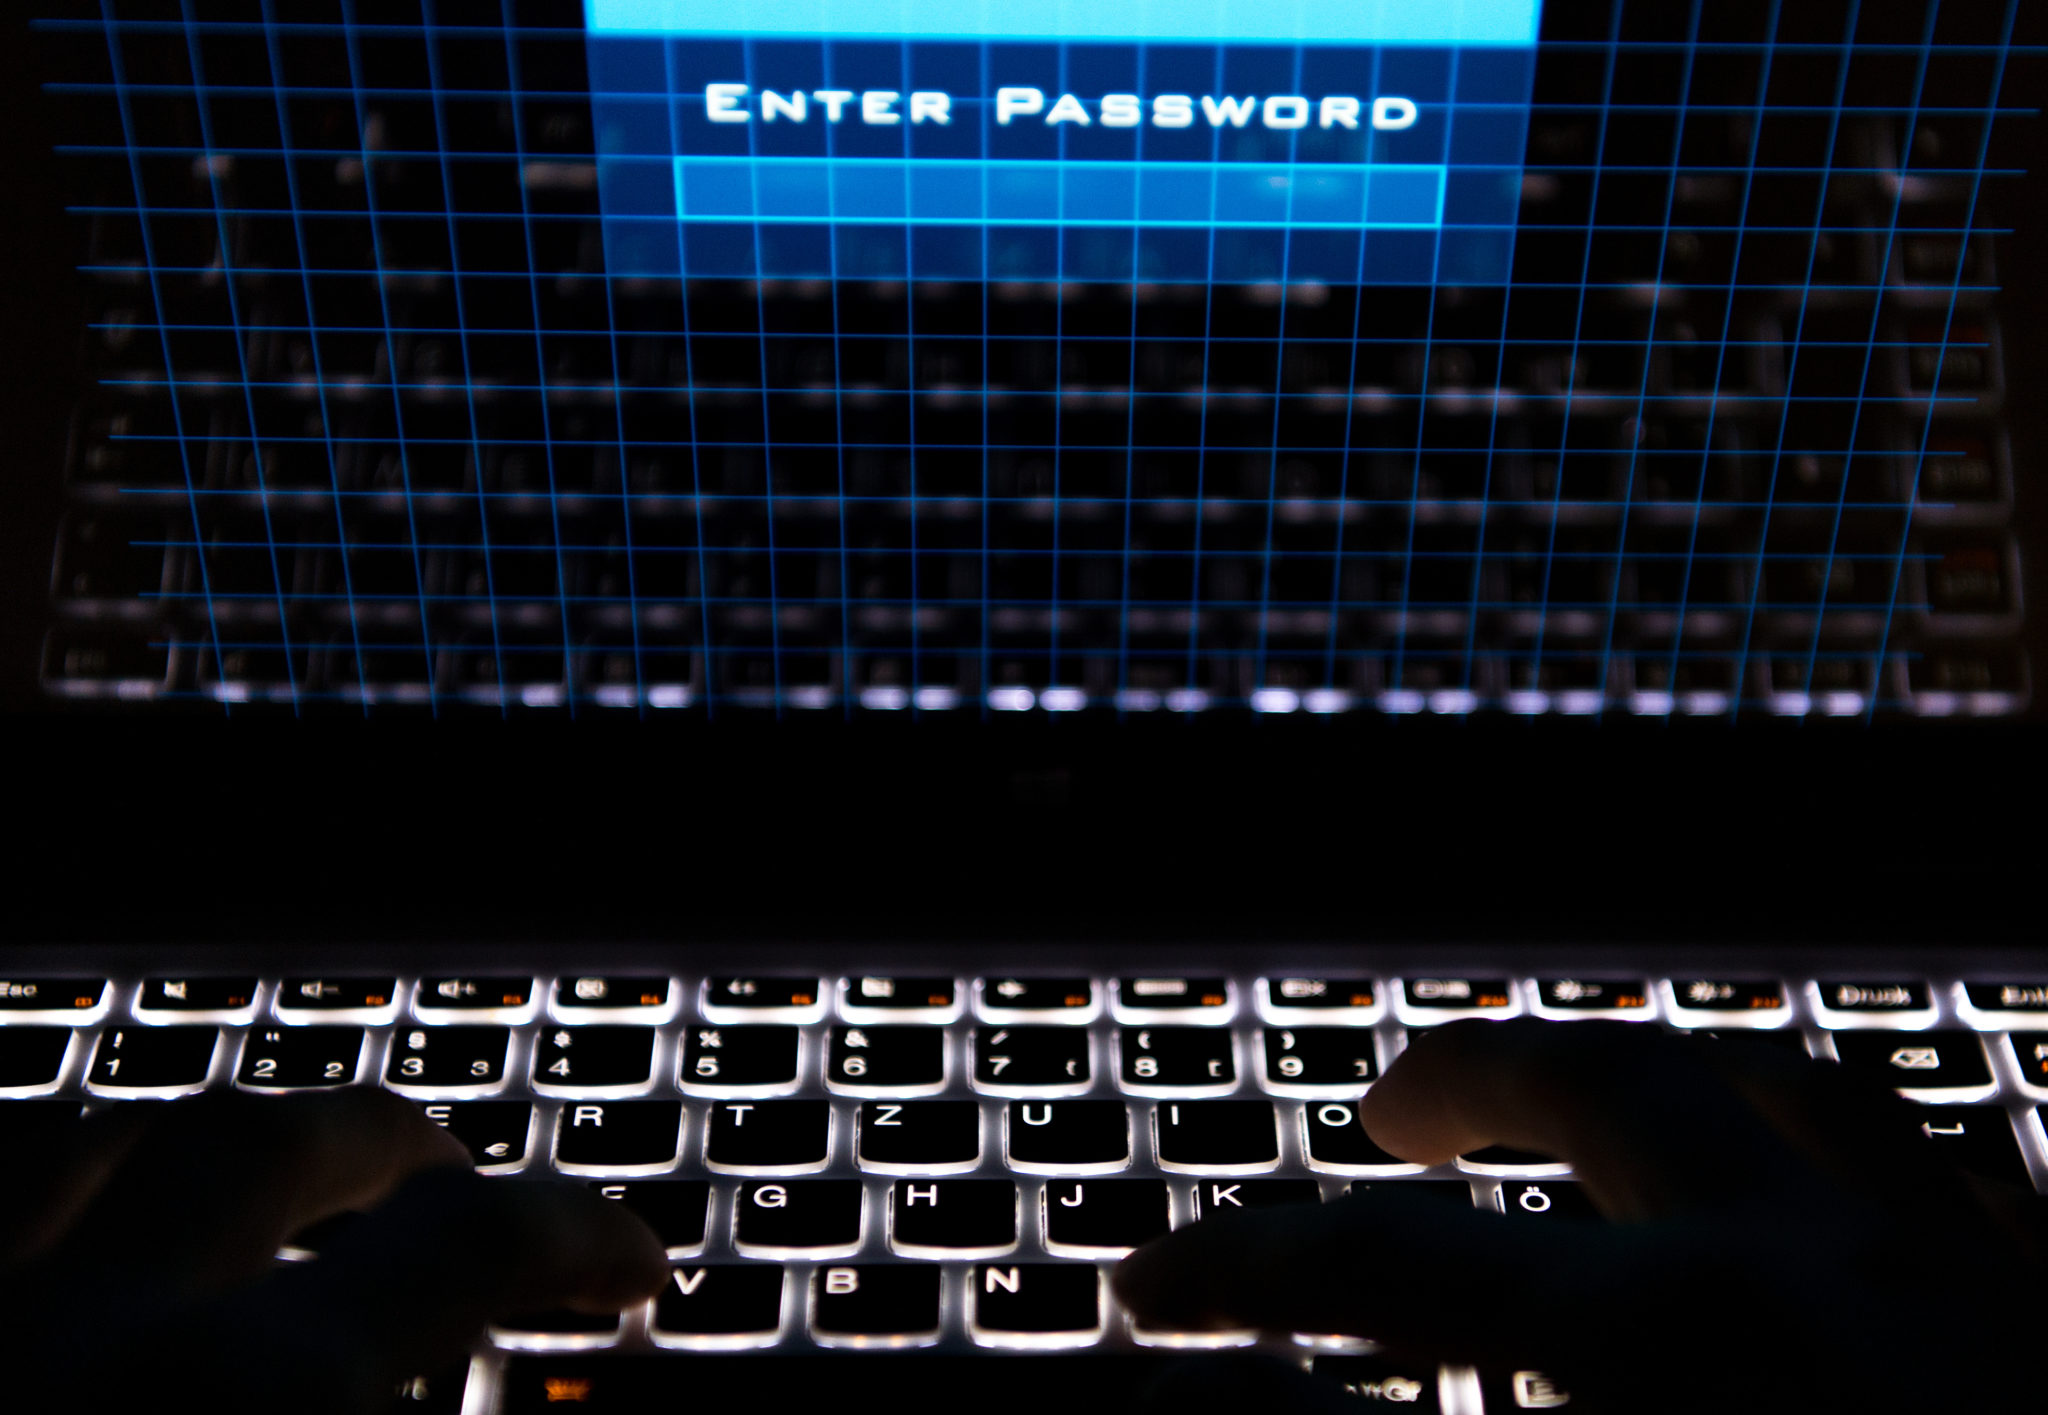 """Two hands type on a keyboard while the screen shows the words """"Enter Password""""in Berlin, Germany in 2017"""